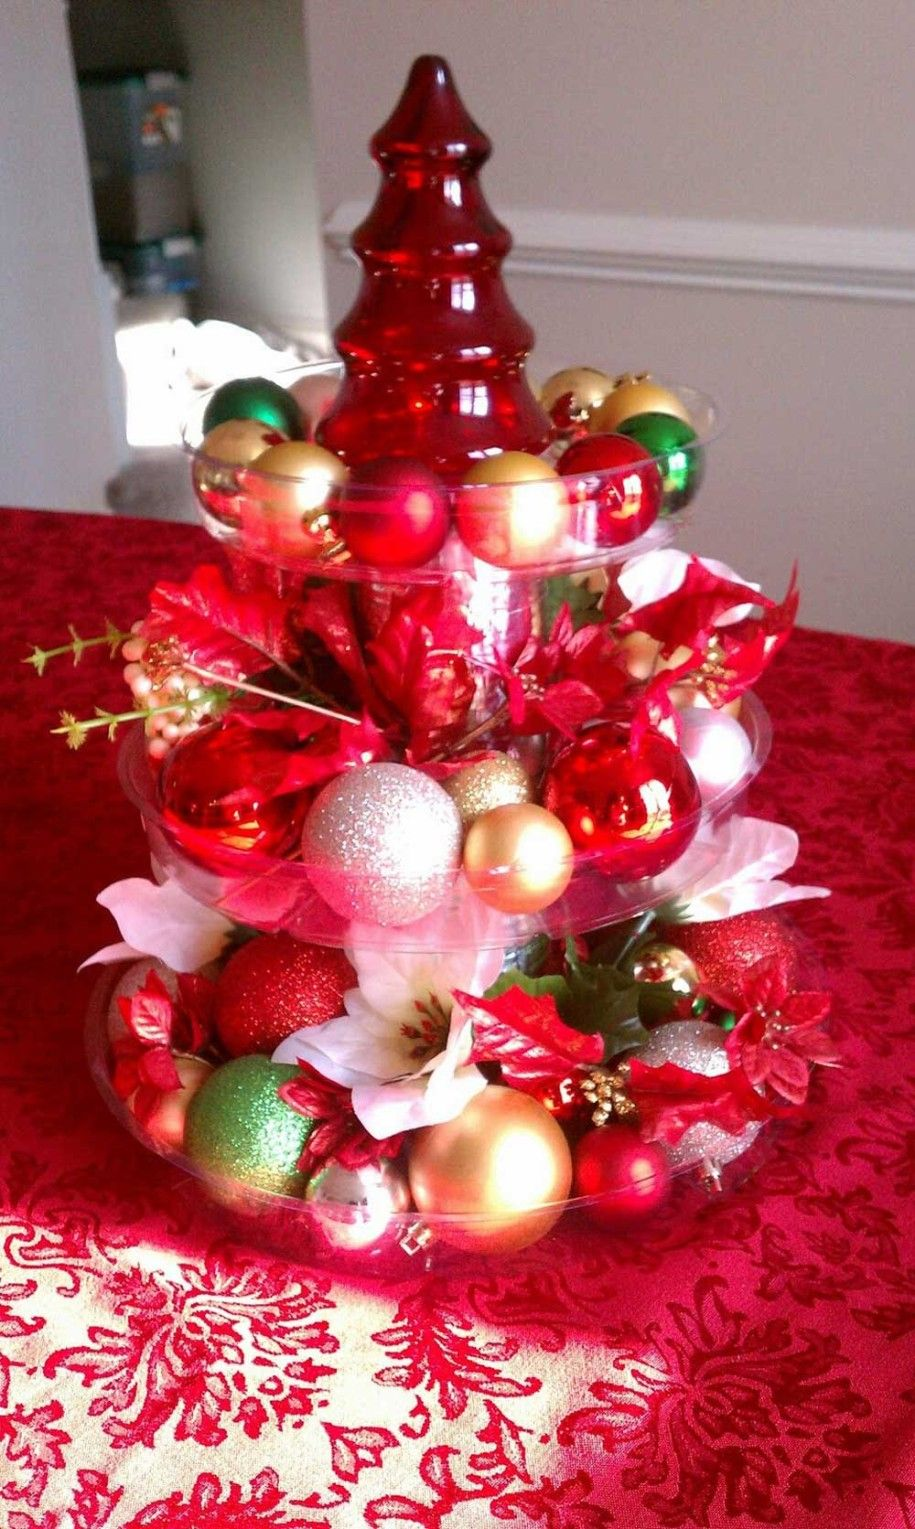 Ideas For Christmas Centerpieces 50 Christmas Centerpiece Decorations Ideas For This Year